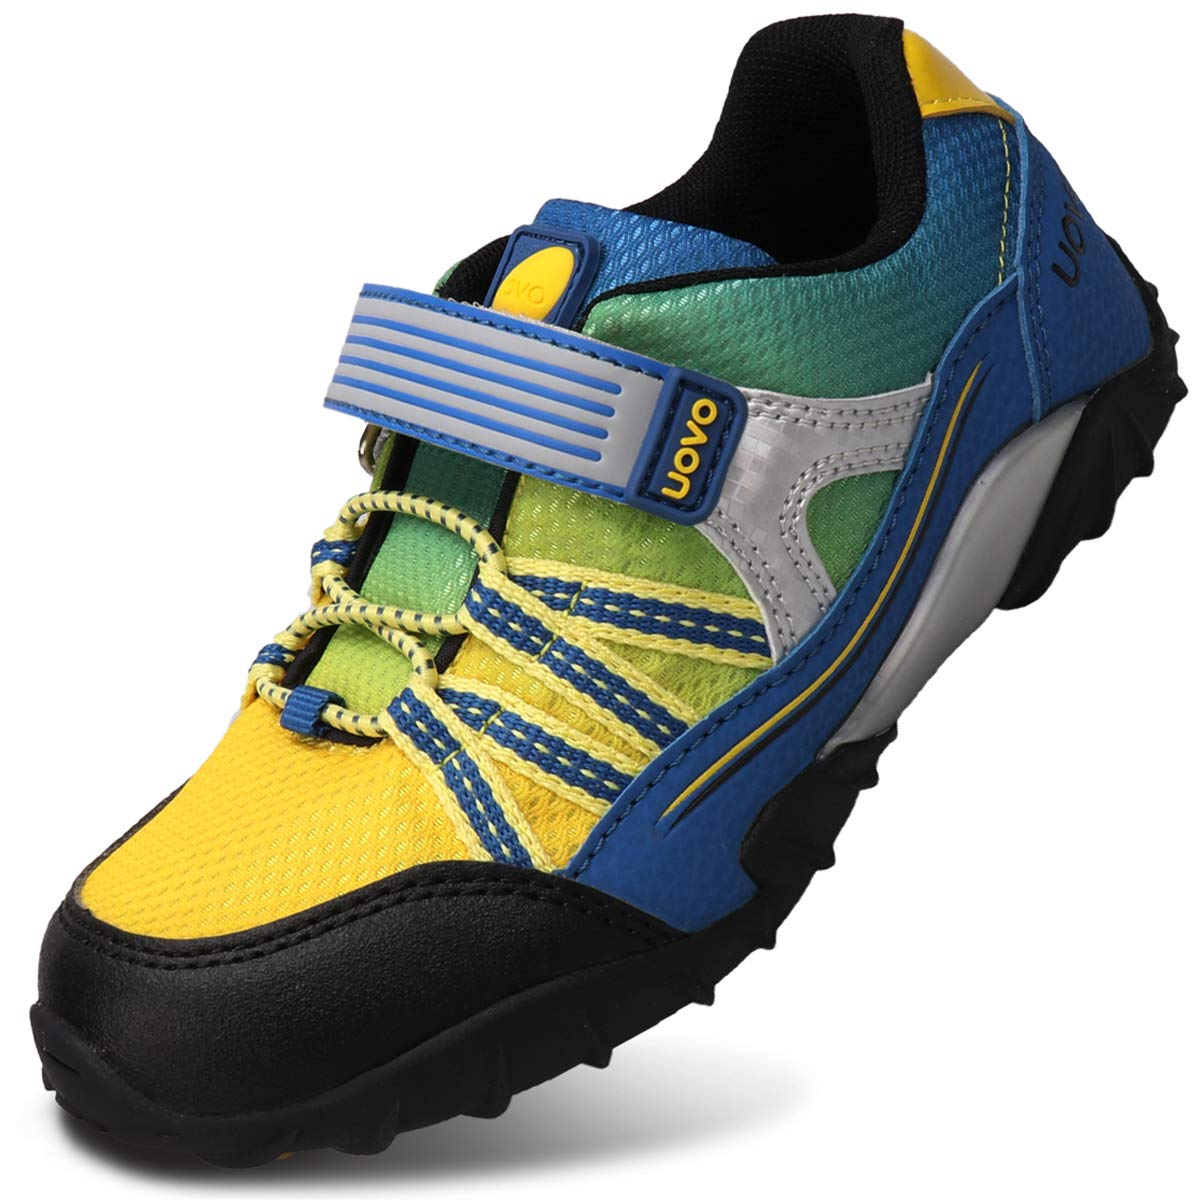 UOVO Little Boys Shoes Running Sneakers Kids Hiking Athletic Tennis Shoes for Toddler Boys Blue by UOVO (Image #2)